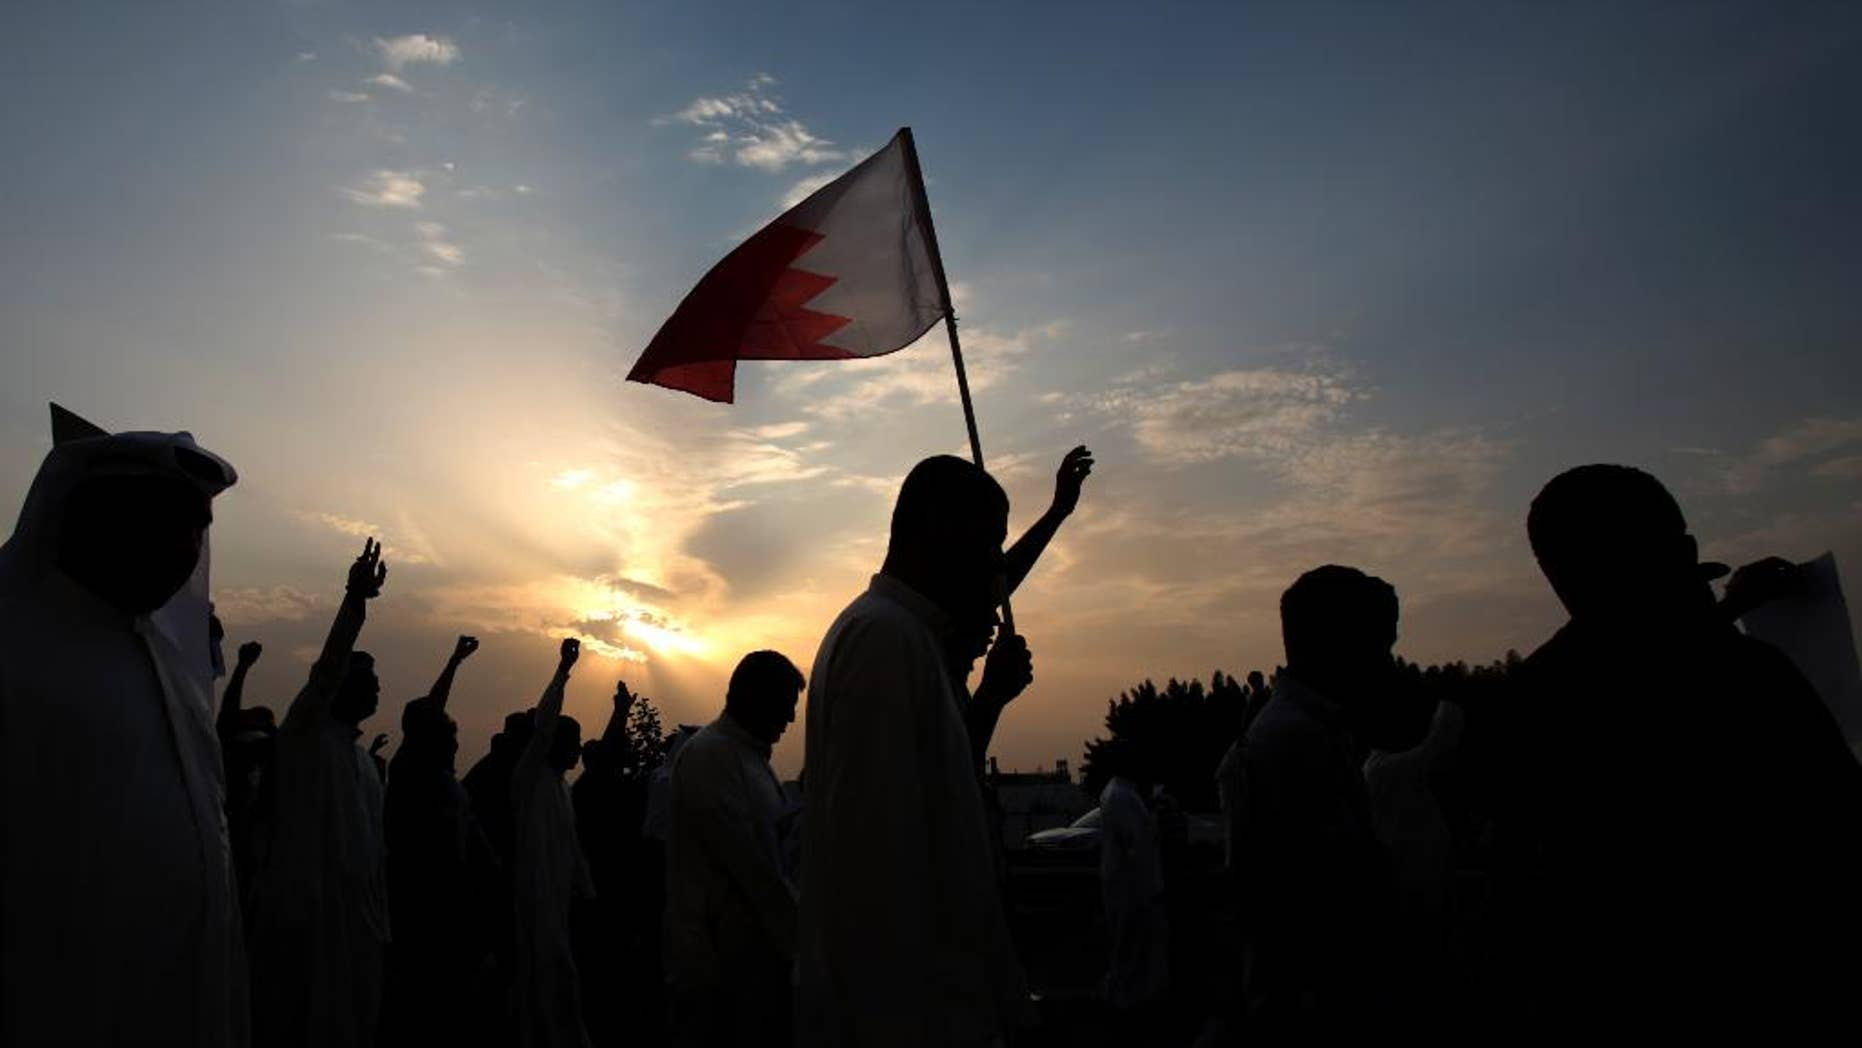 Thousands of Bahraini anti-government protesters, waving national flags and gesturing defiantly, chant slogans during a march organized by opposition groups in A'ali, Bahrain, Friday, April 18, 2014. A pro-democracy uprising of peaceful daytime marches and violent nighttime clashes simmers in its fourth year in the Gulf island kingdom. (AP Photo/Hasan Jamali)